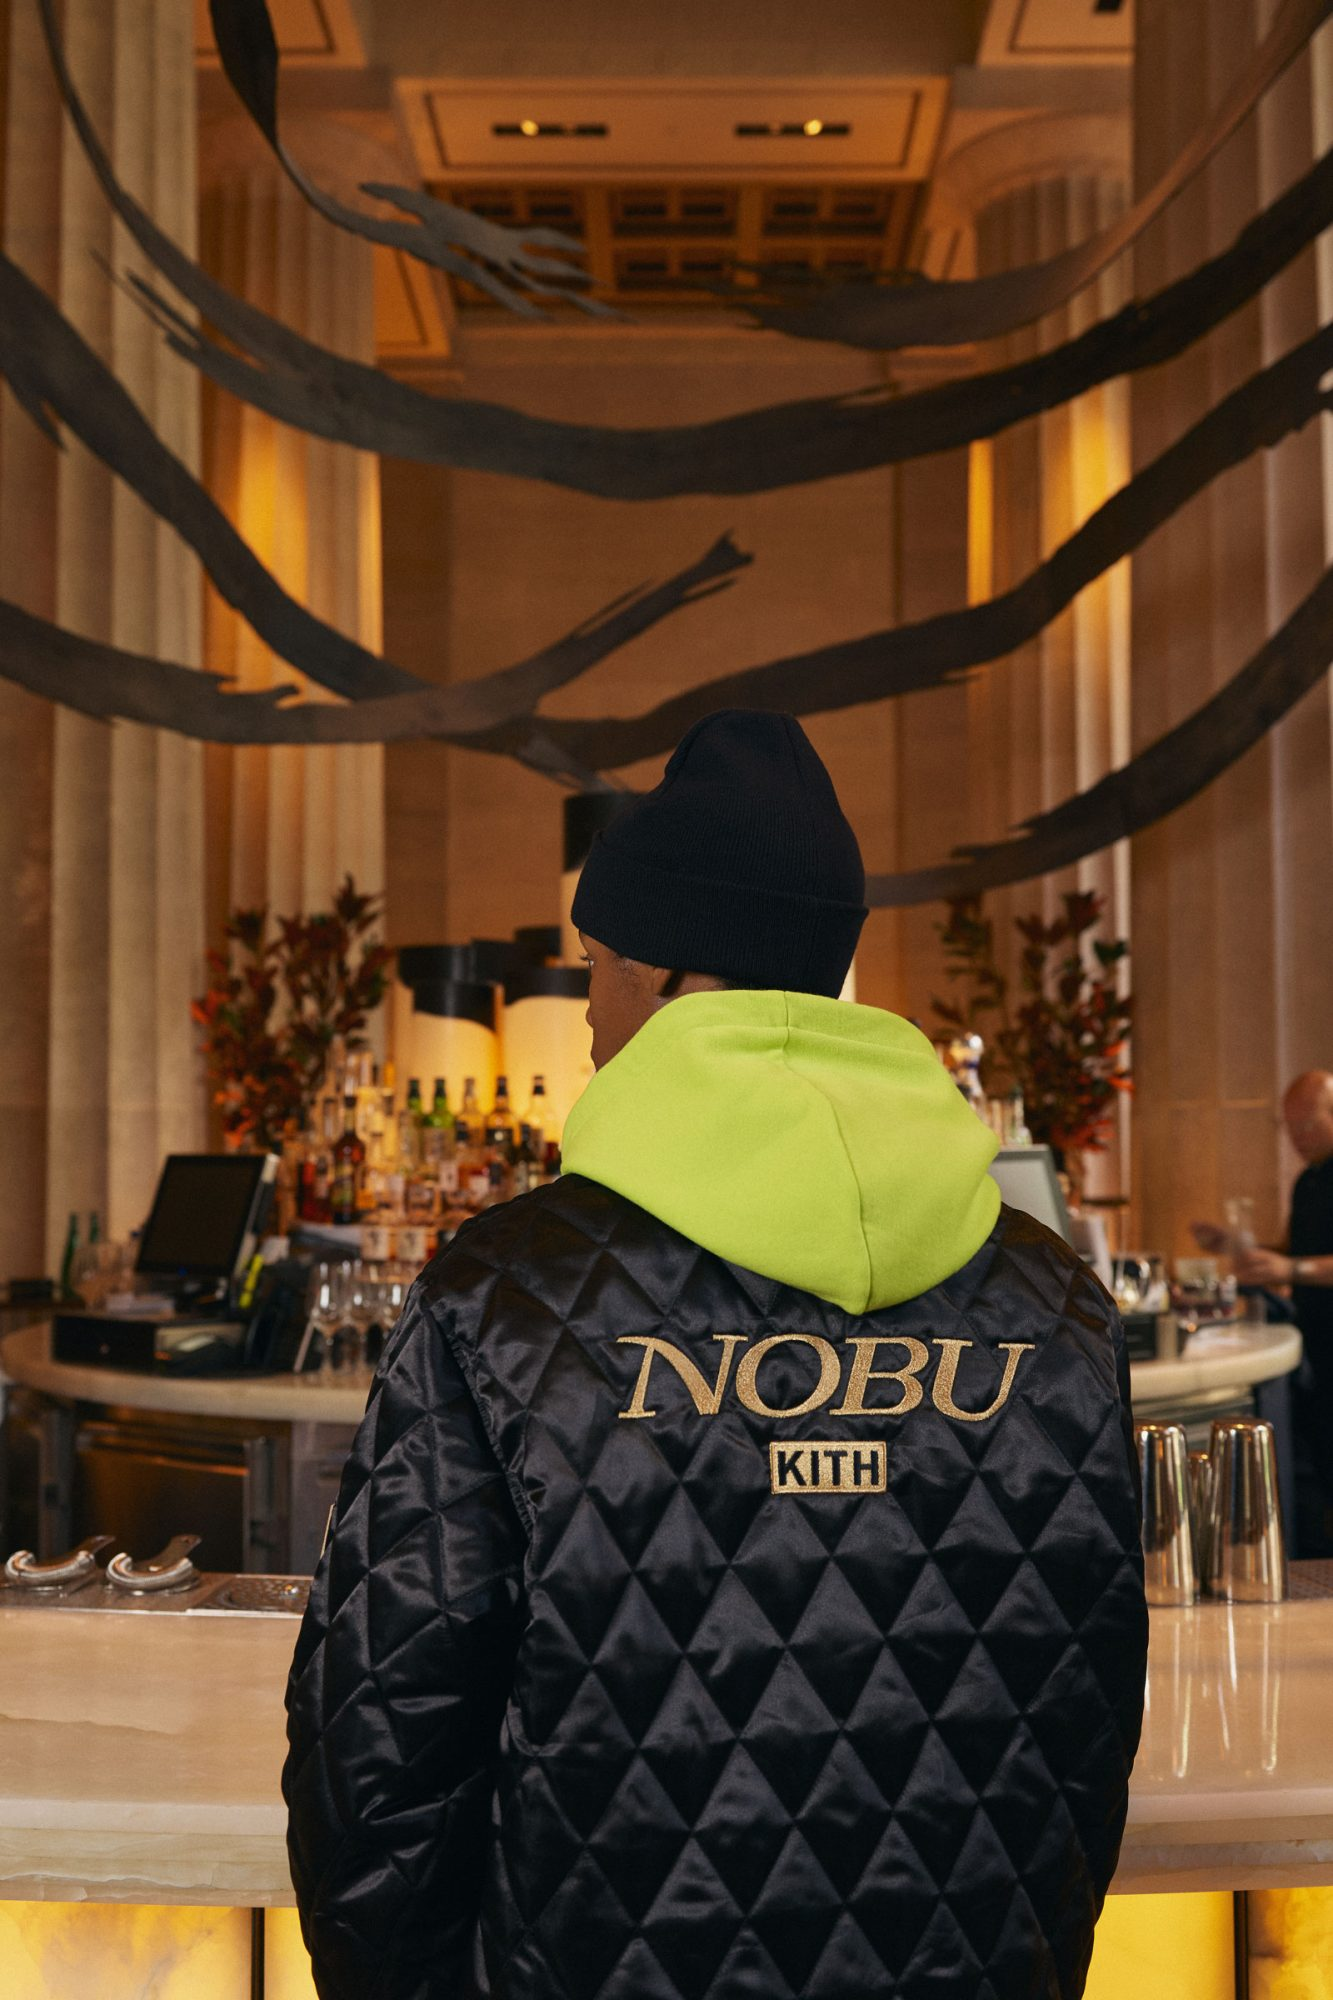 Kith and Nobu Capsule Collection